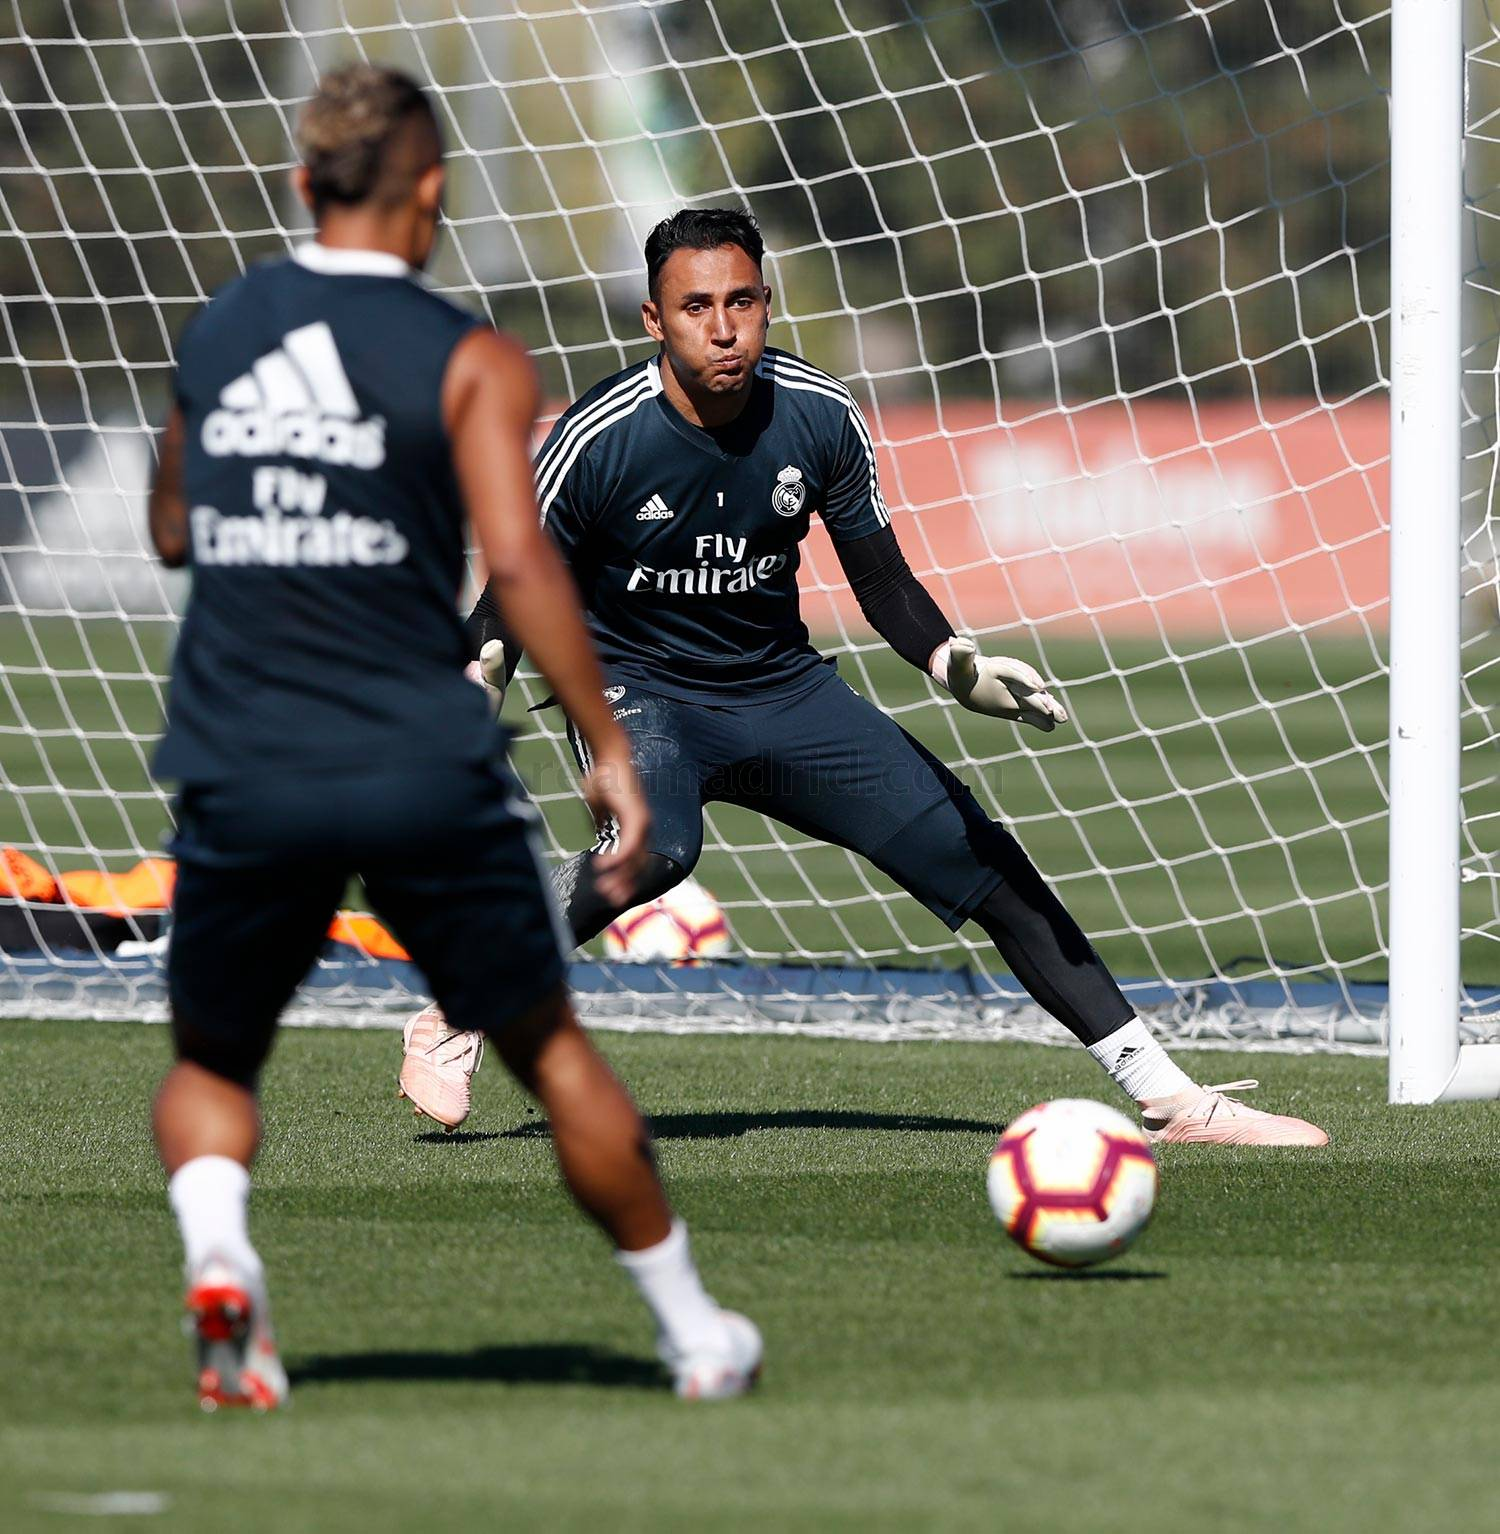 Real Madrid - Entrenamiento del Real Madrid - 04-10-2018